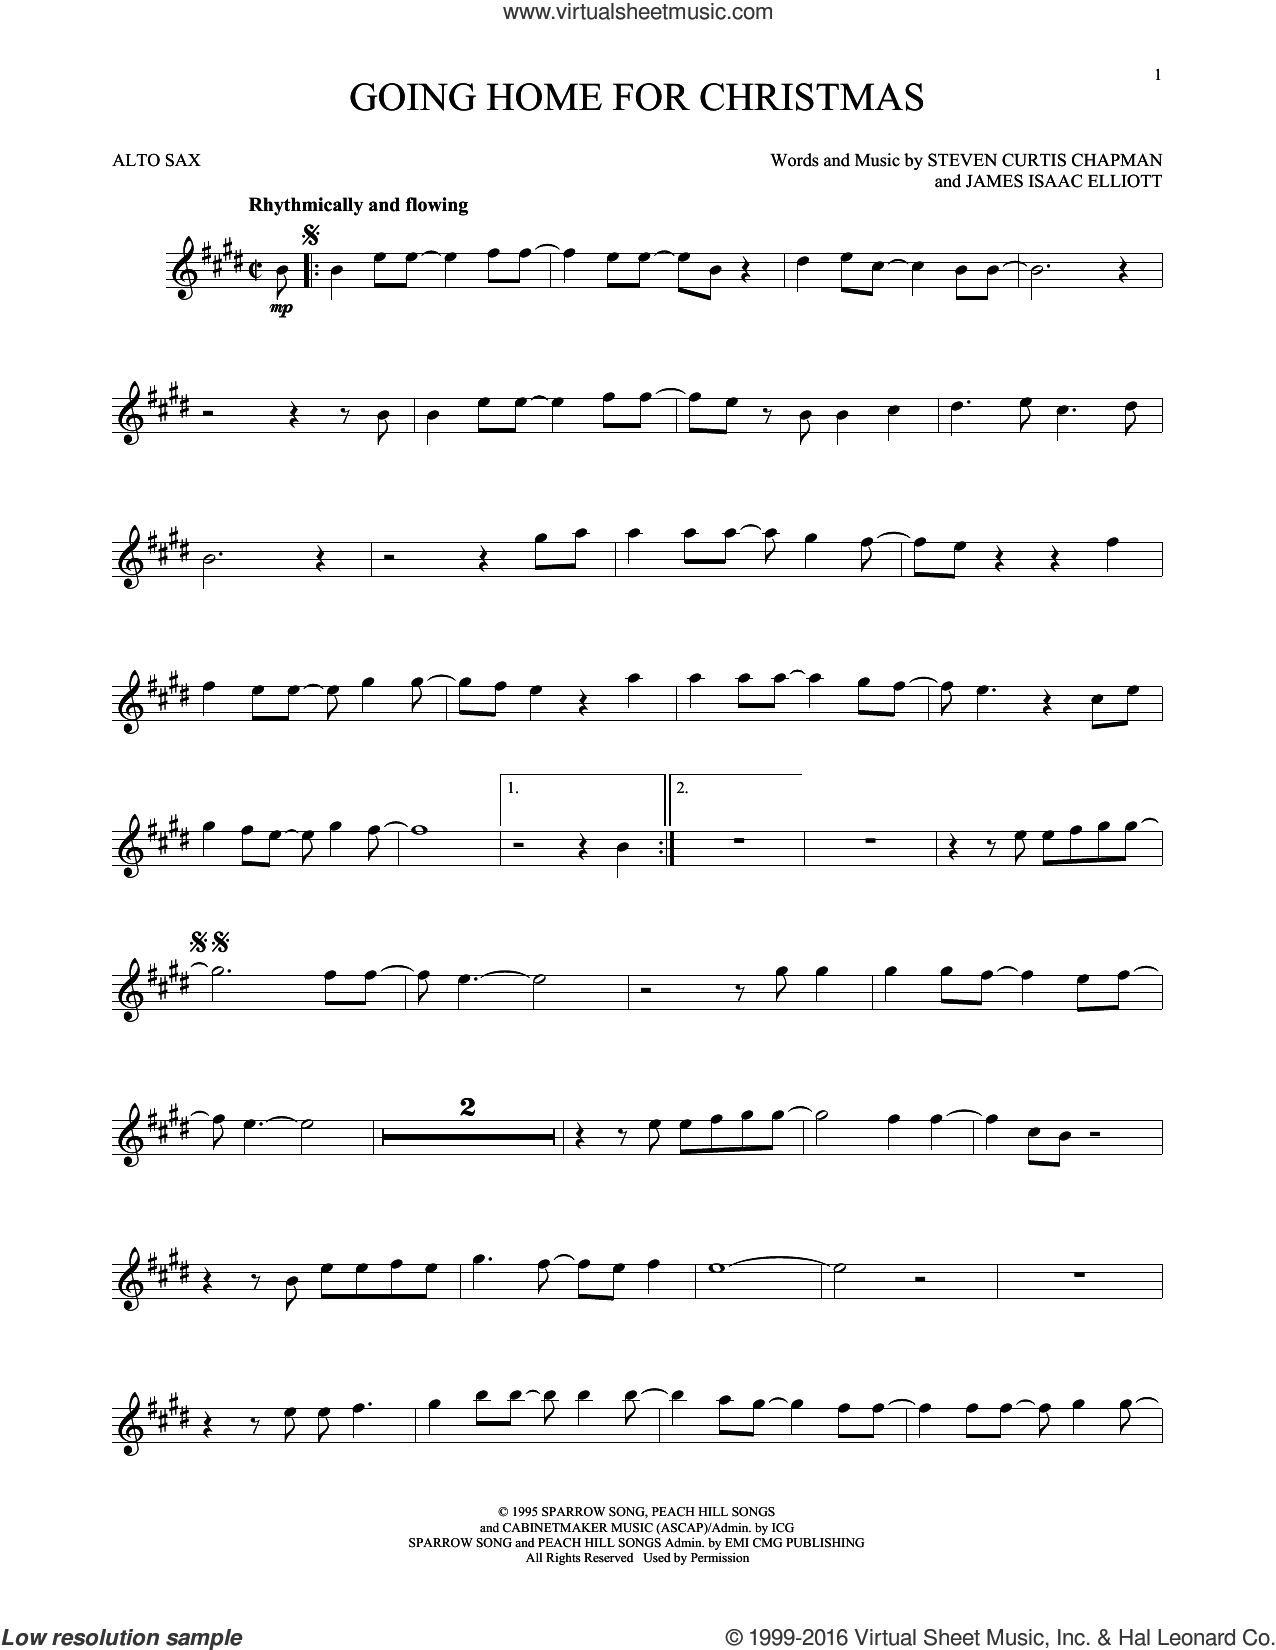 Going Home For Christmas sheet music for tenor saxophone solo by James Isaac Elliott and Steven Curtis Chapman. Score Image Preview.